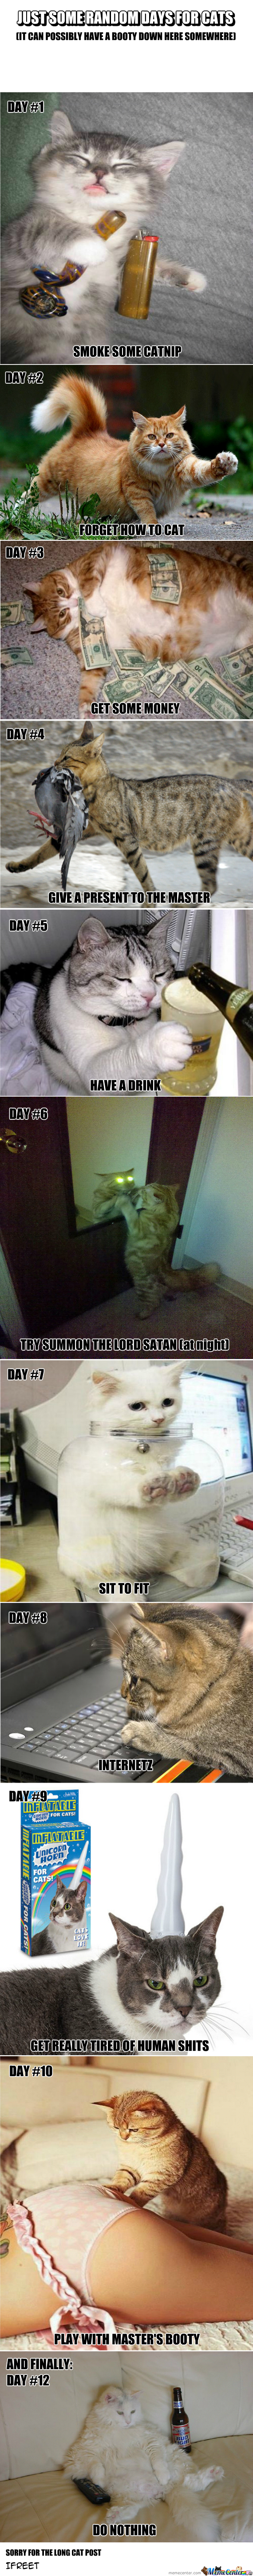 Just Normal Days For Cats